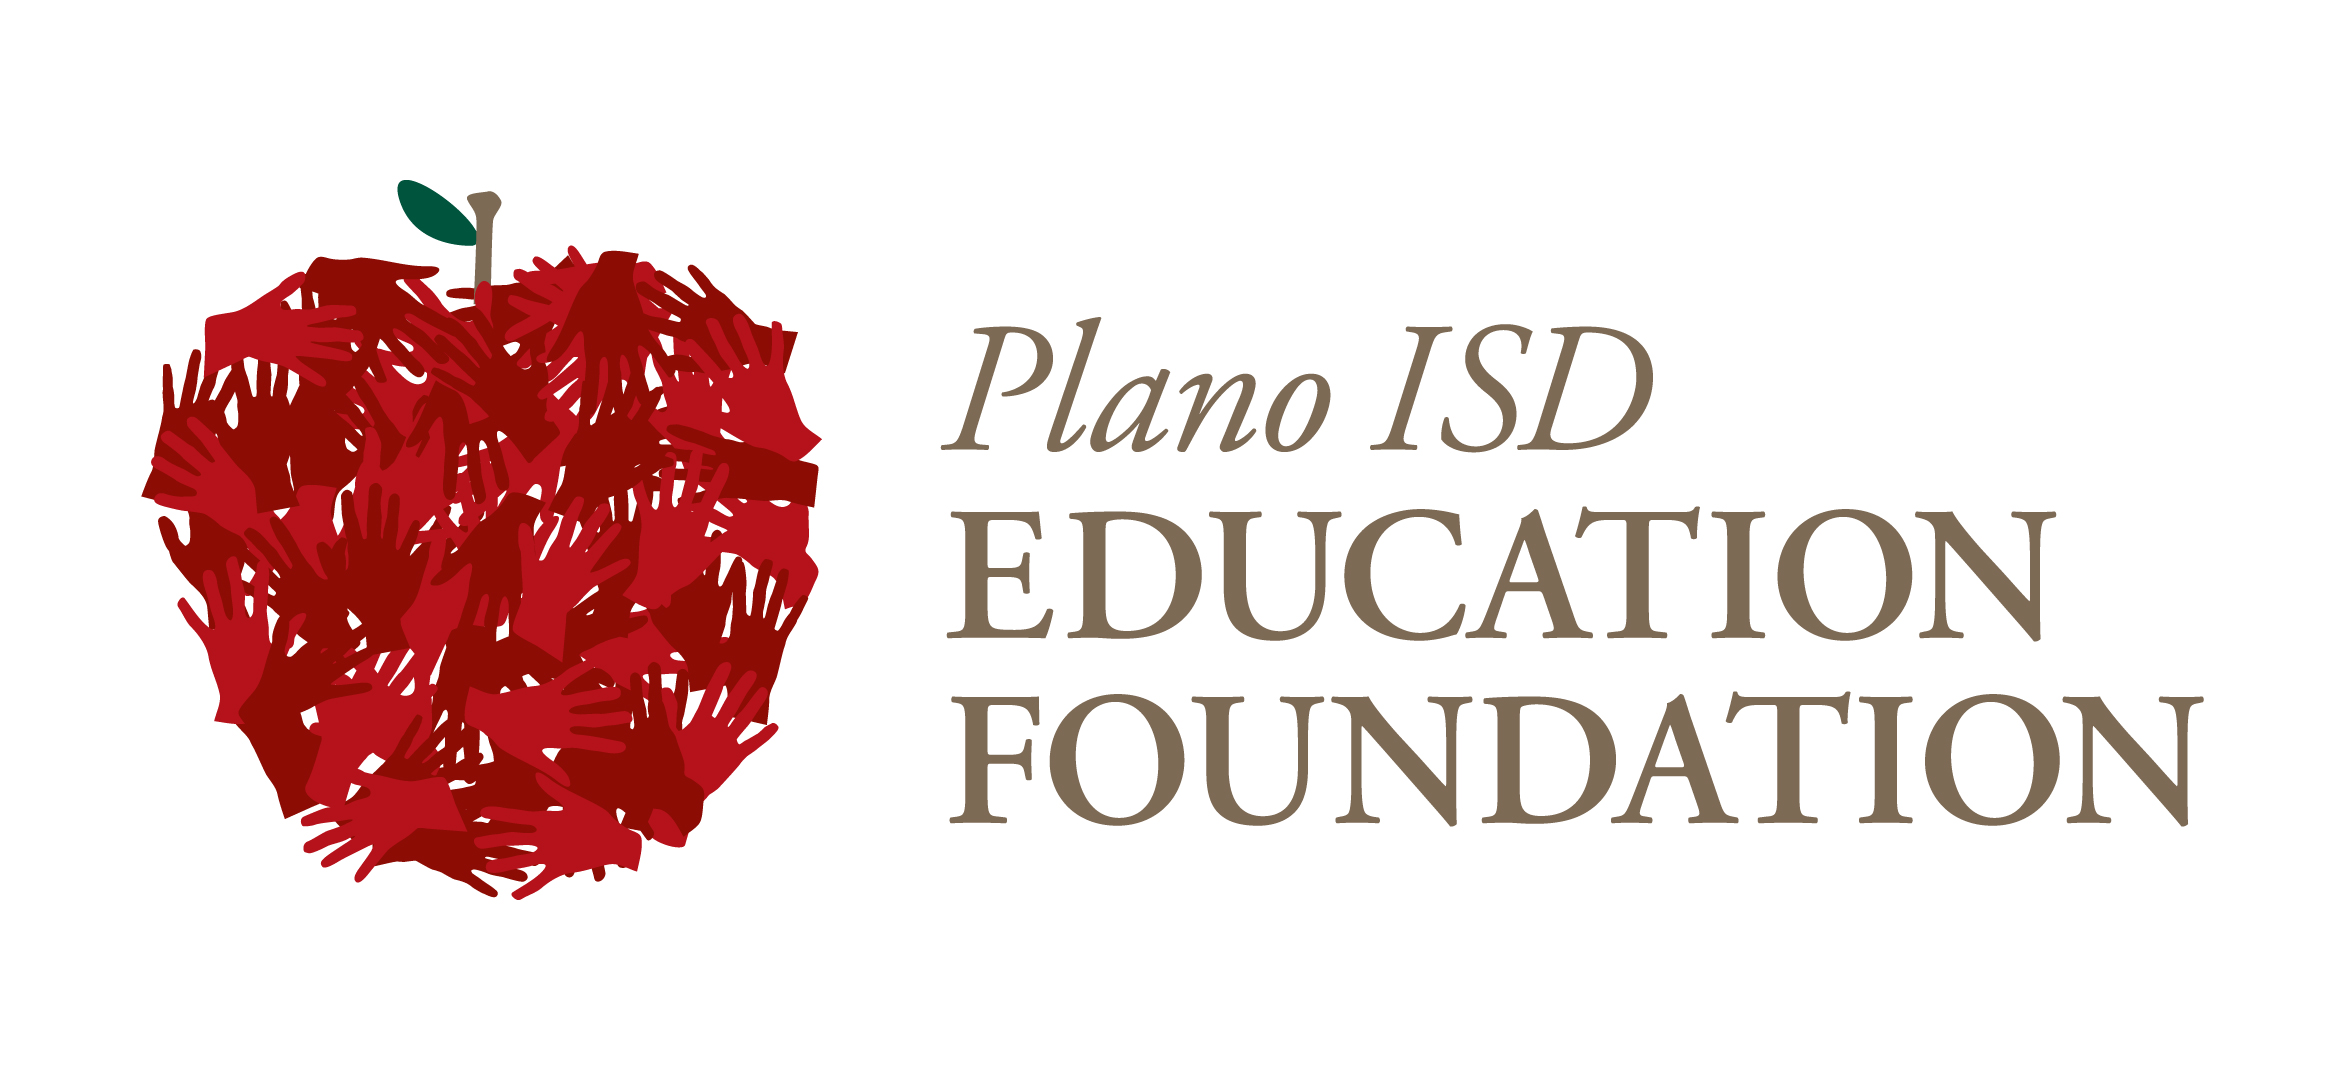 Certified nursing assistant jobs in plano tx 85 daycare teacher certified nursing assistant jobs in plano tx plano isd education foundation guidestar profile xflitez Image collections